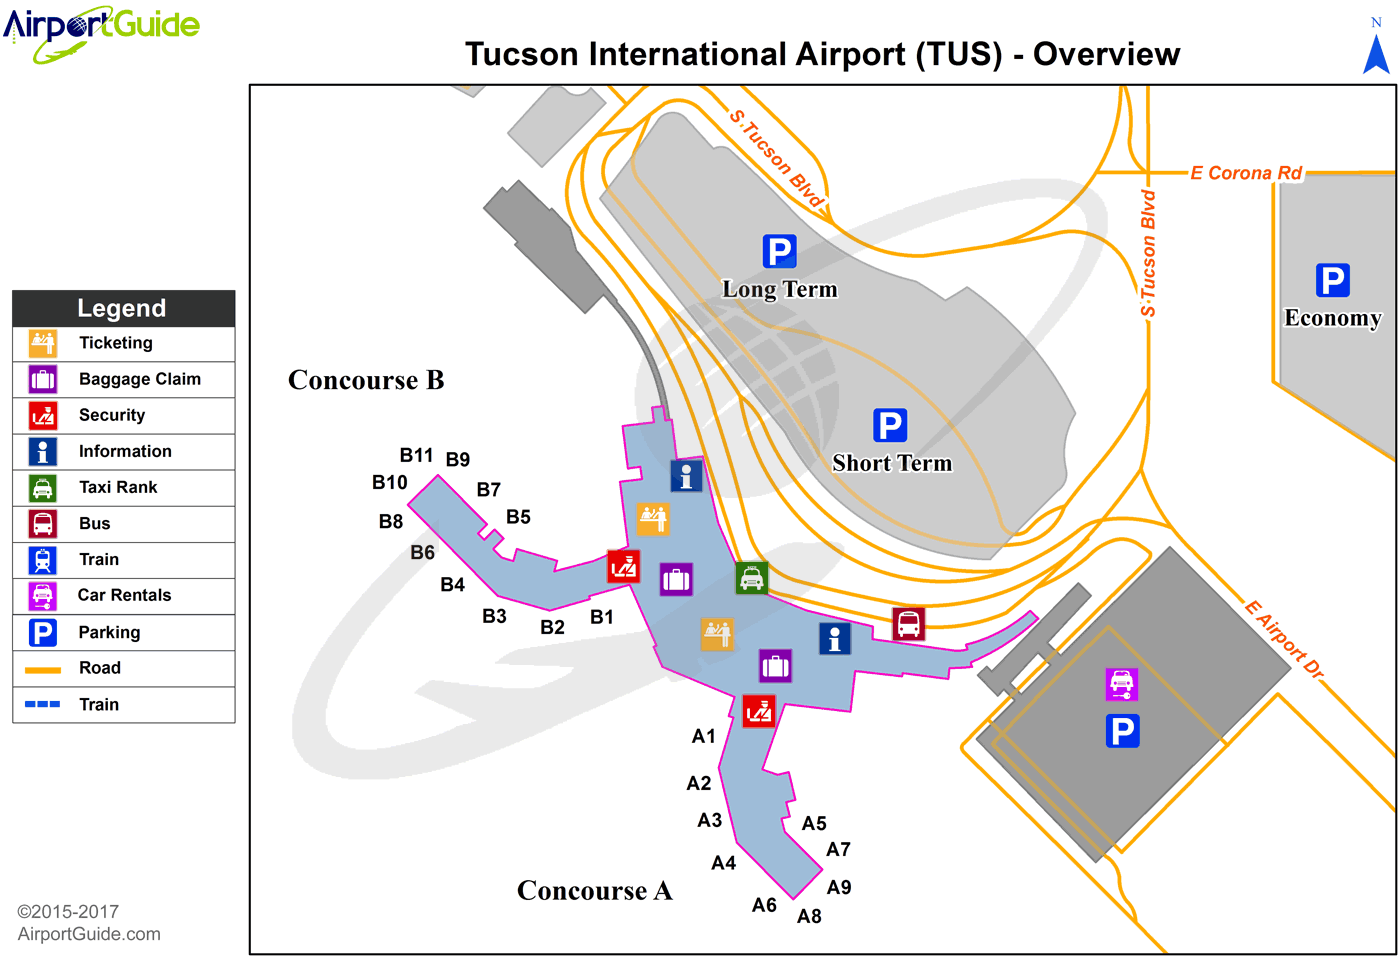 Tucson - Tucson International (TUS) Airport Terminal Map - Overview